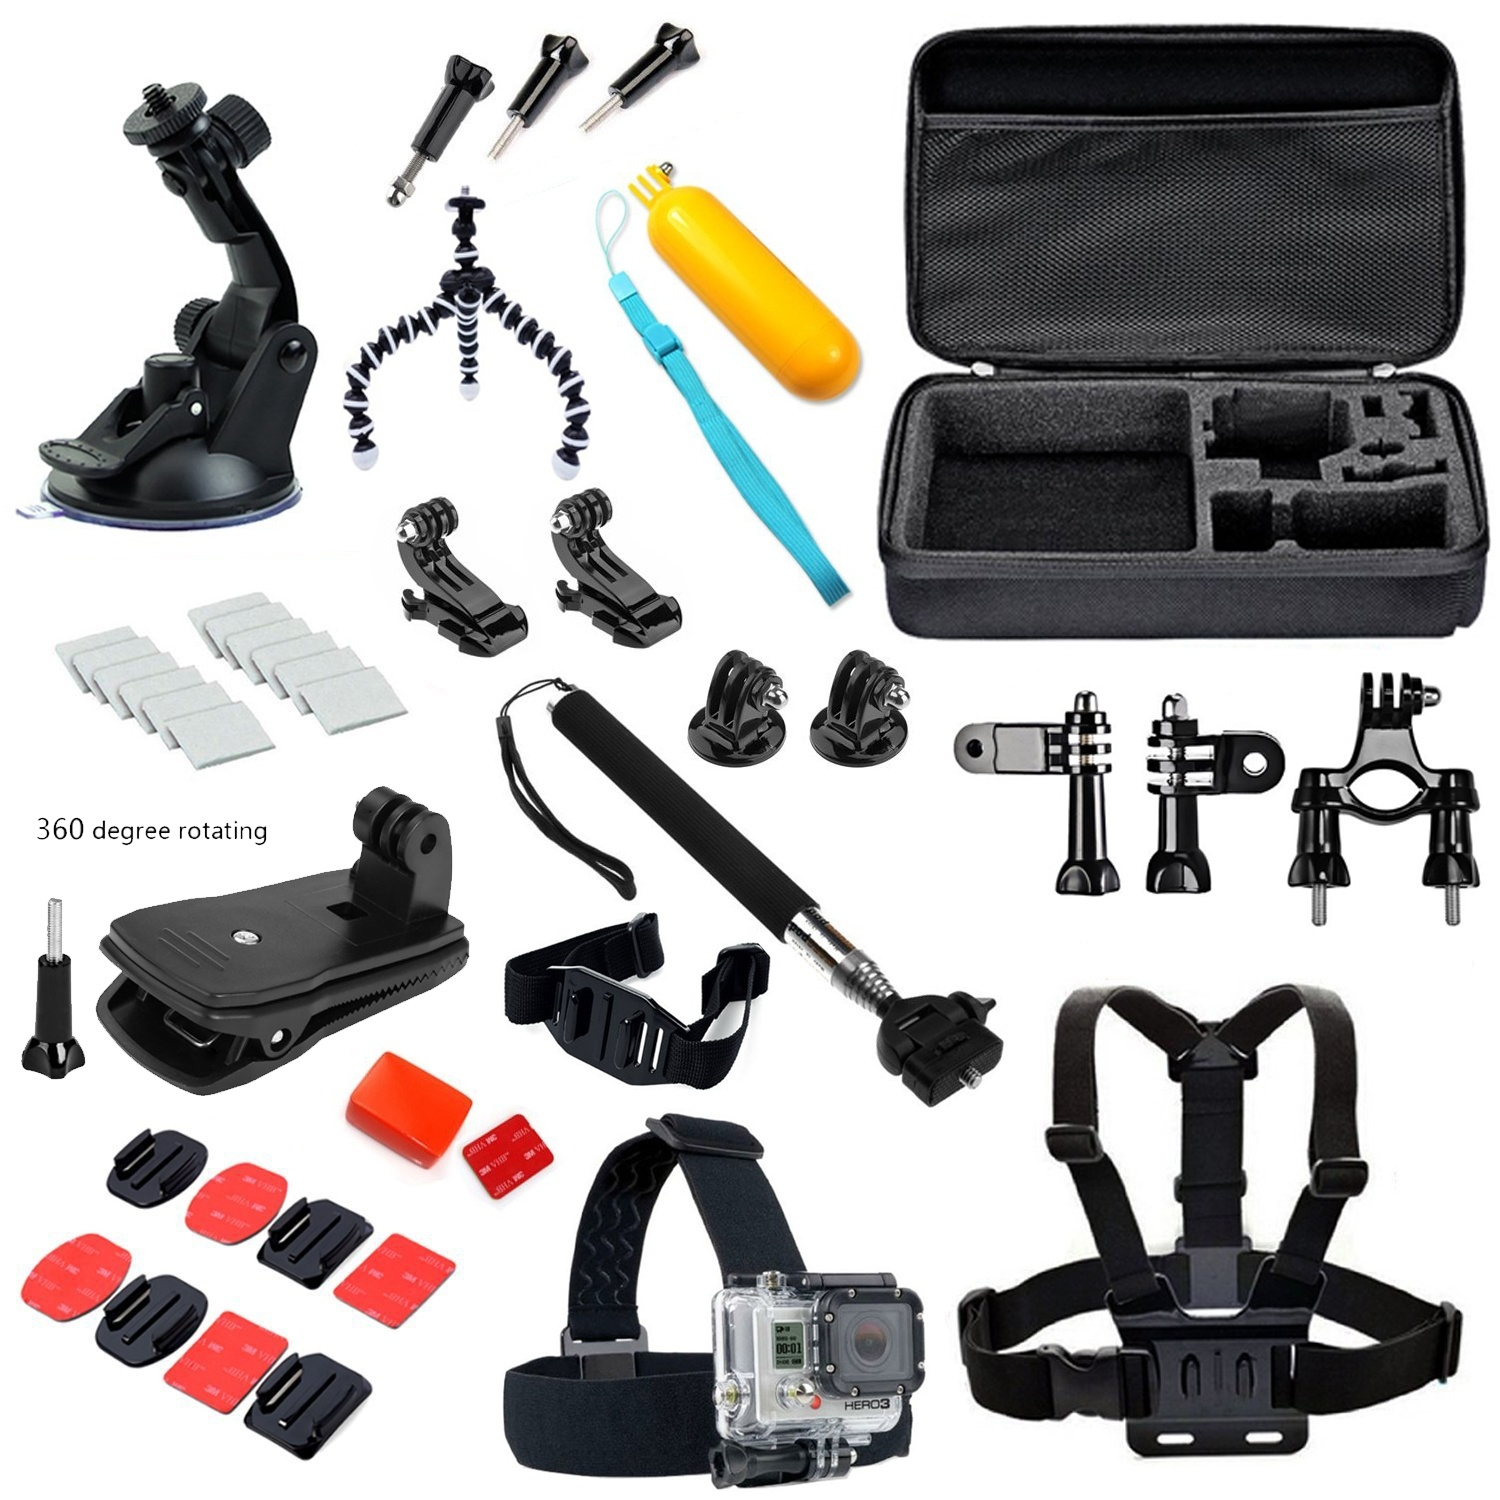 Gopro Accessories Head strap Chest strap Helmet strap Floating Handle Grip Monopod pole carry bag for Gopro Hero4 3+ 3 2<br><br>Aliexpress